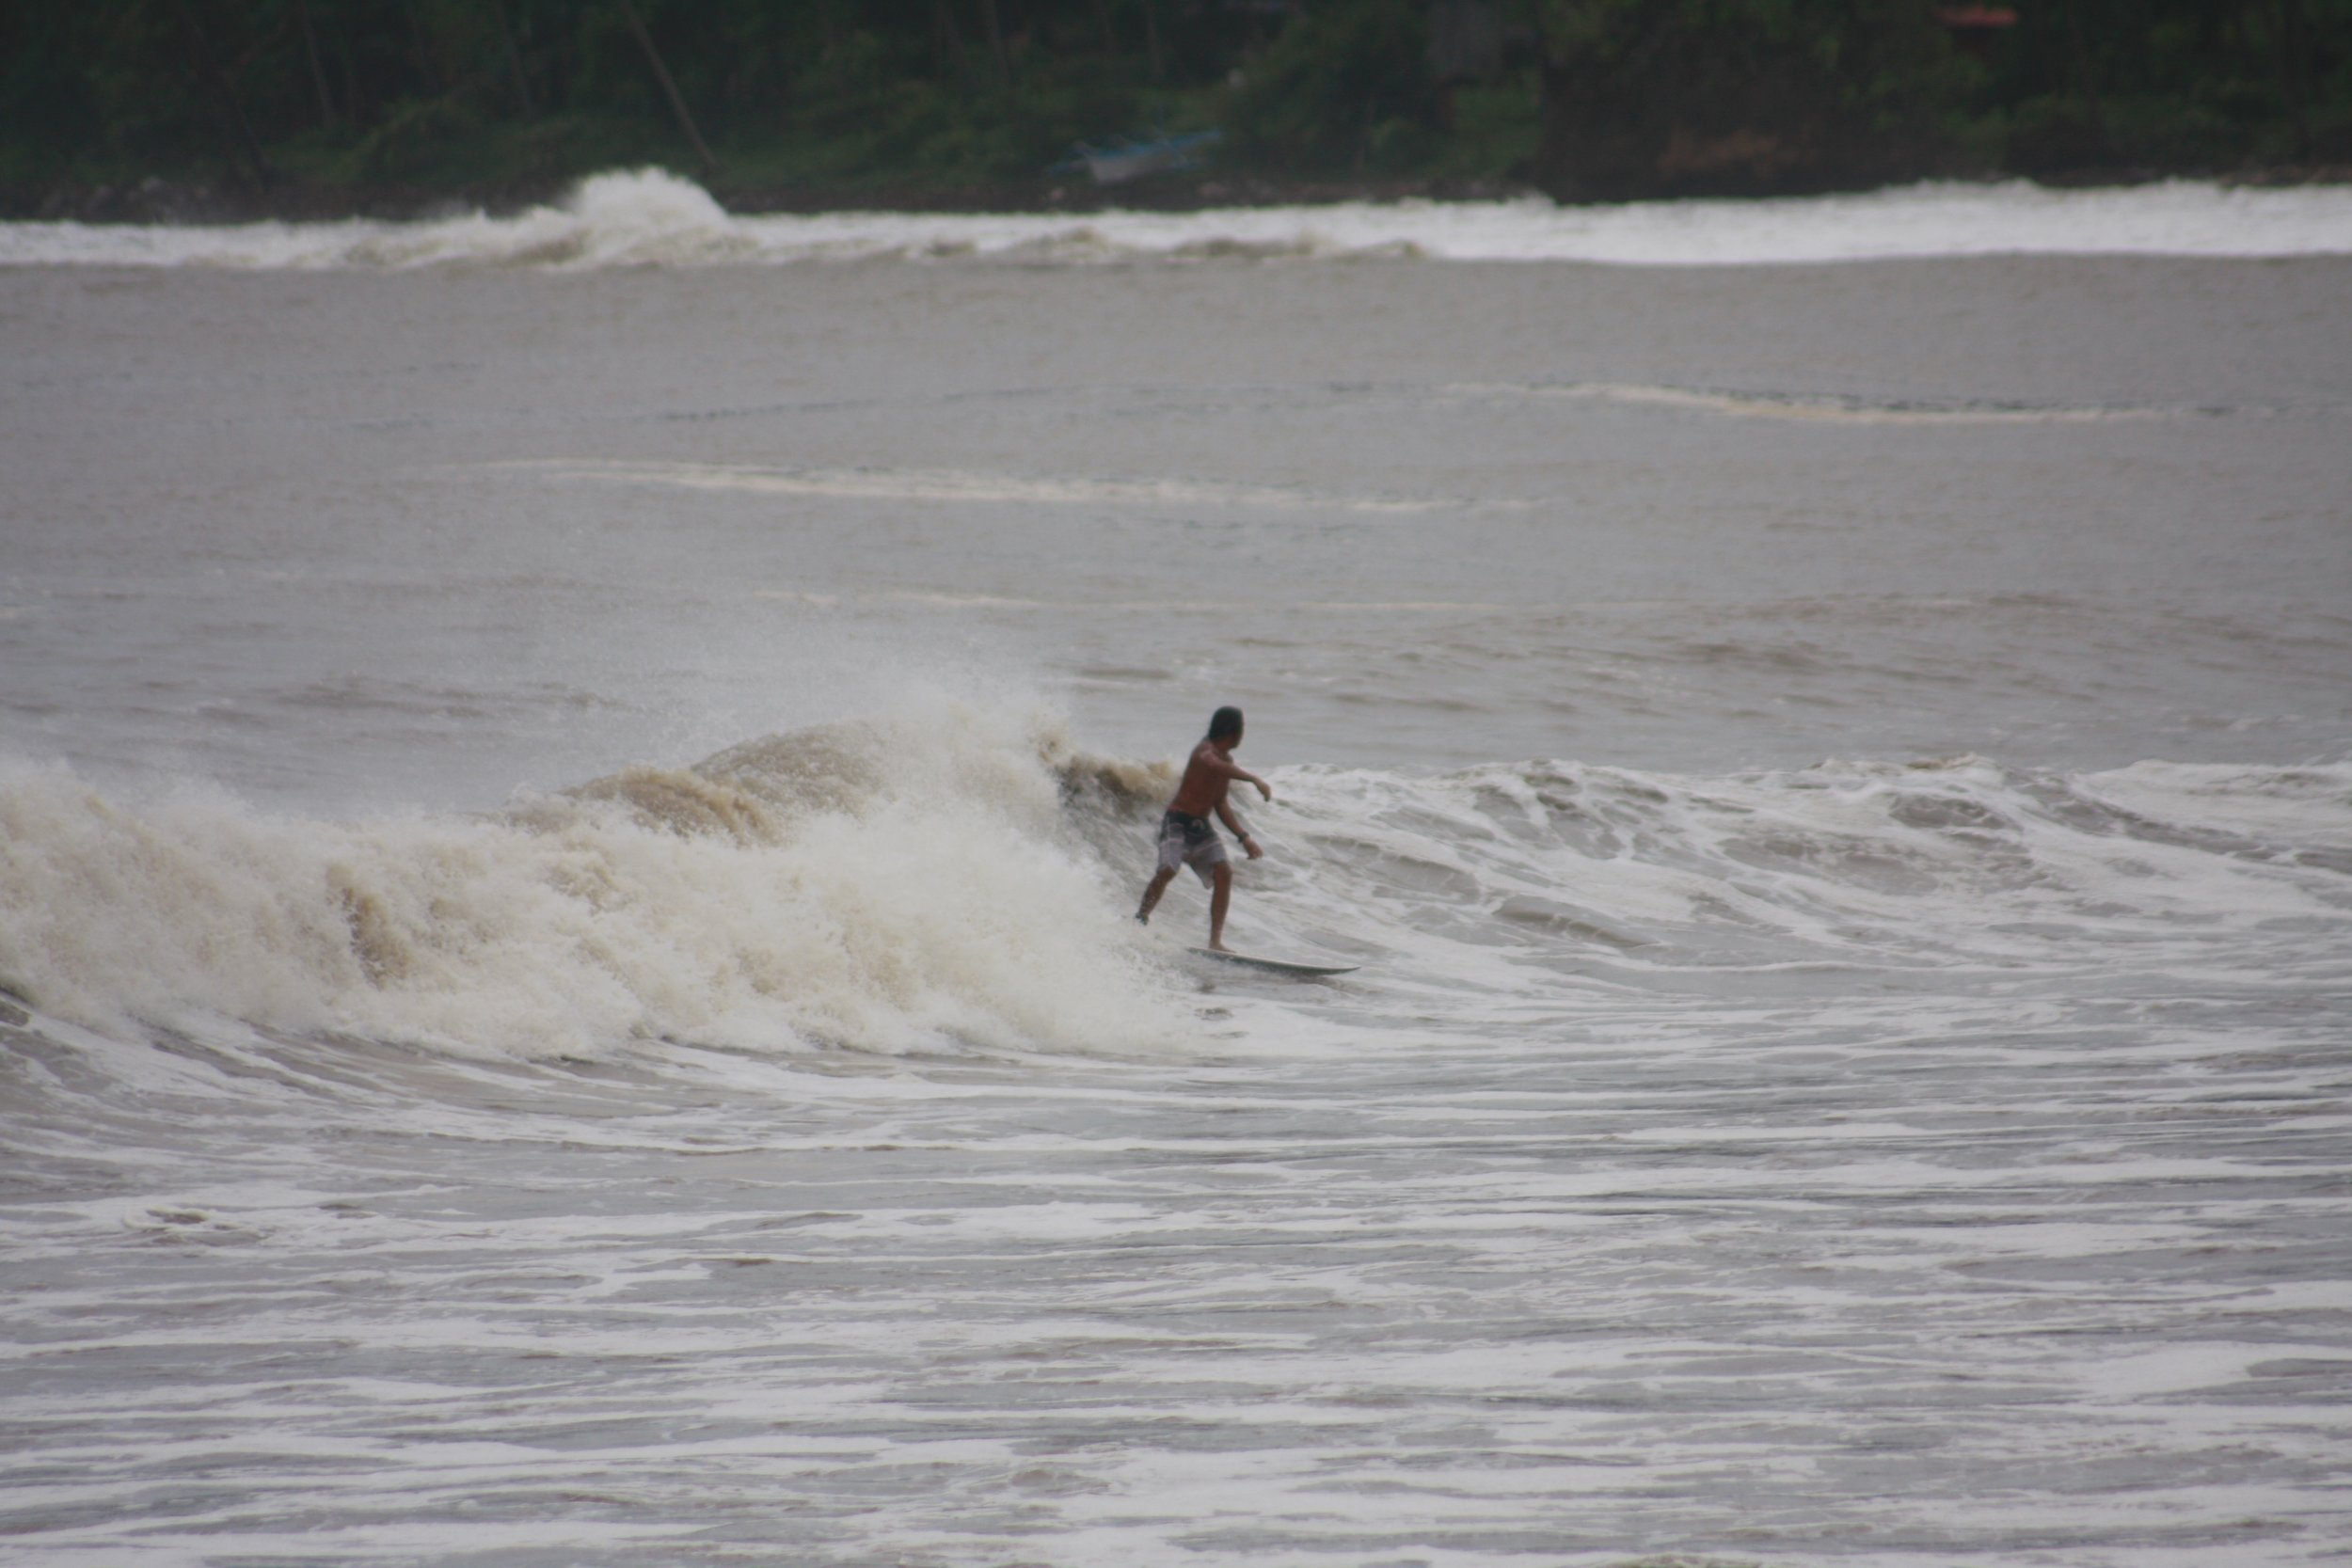 The only shortboarder in our crew, Sandy Santos, makes riding this shoulder-high wave look easy.